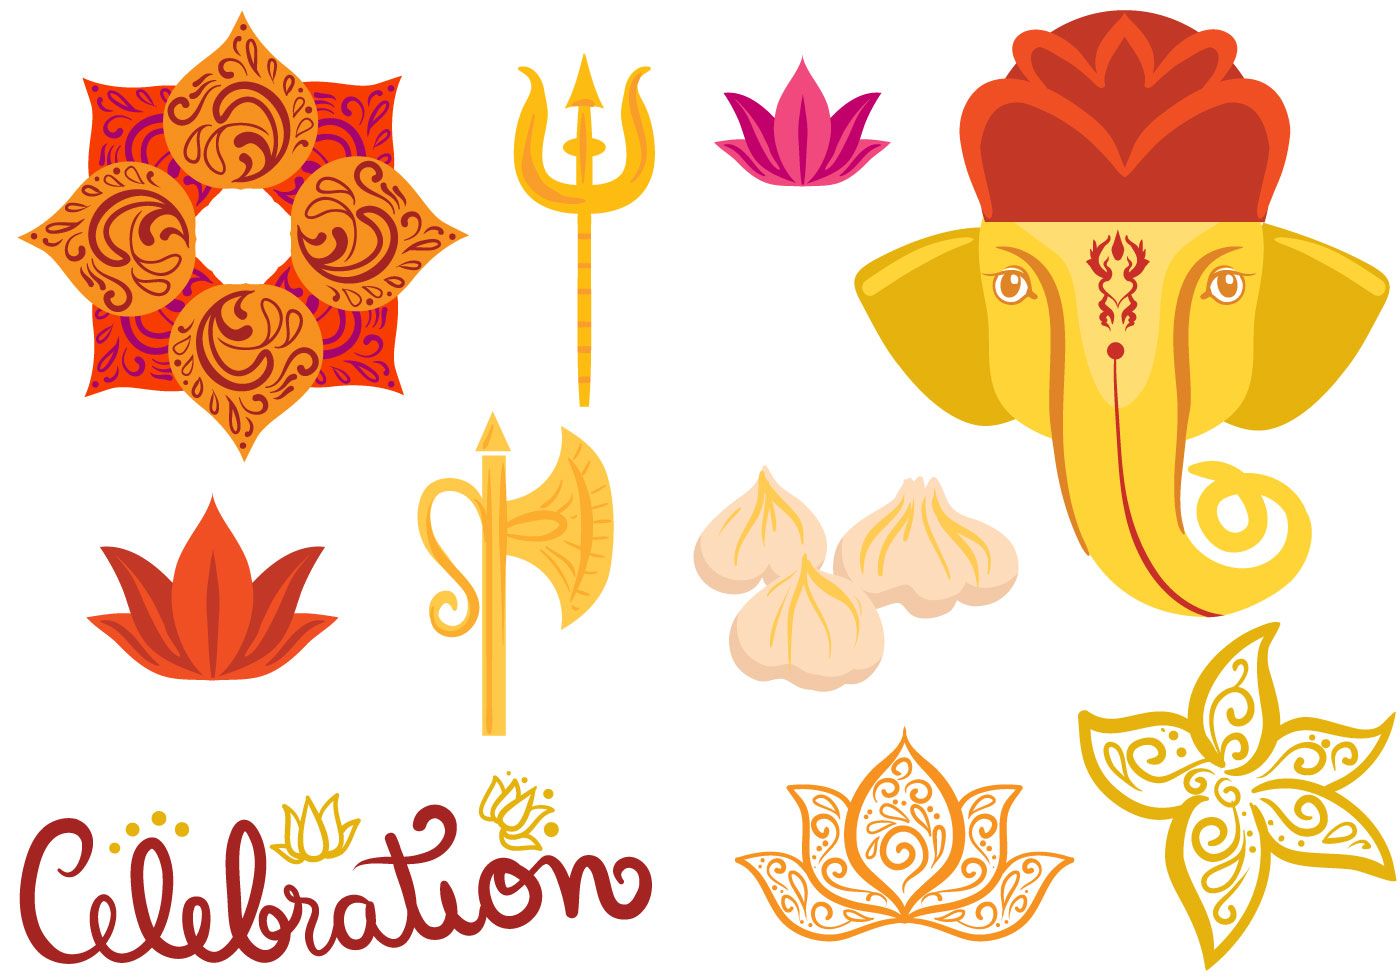 Modak Free Vector Art.